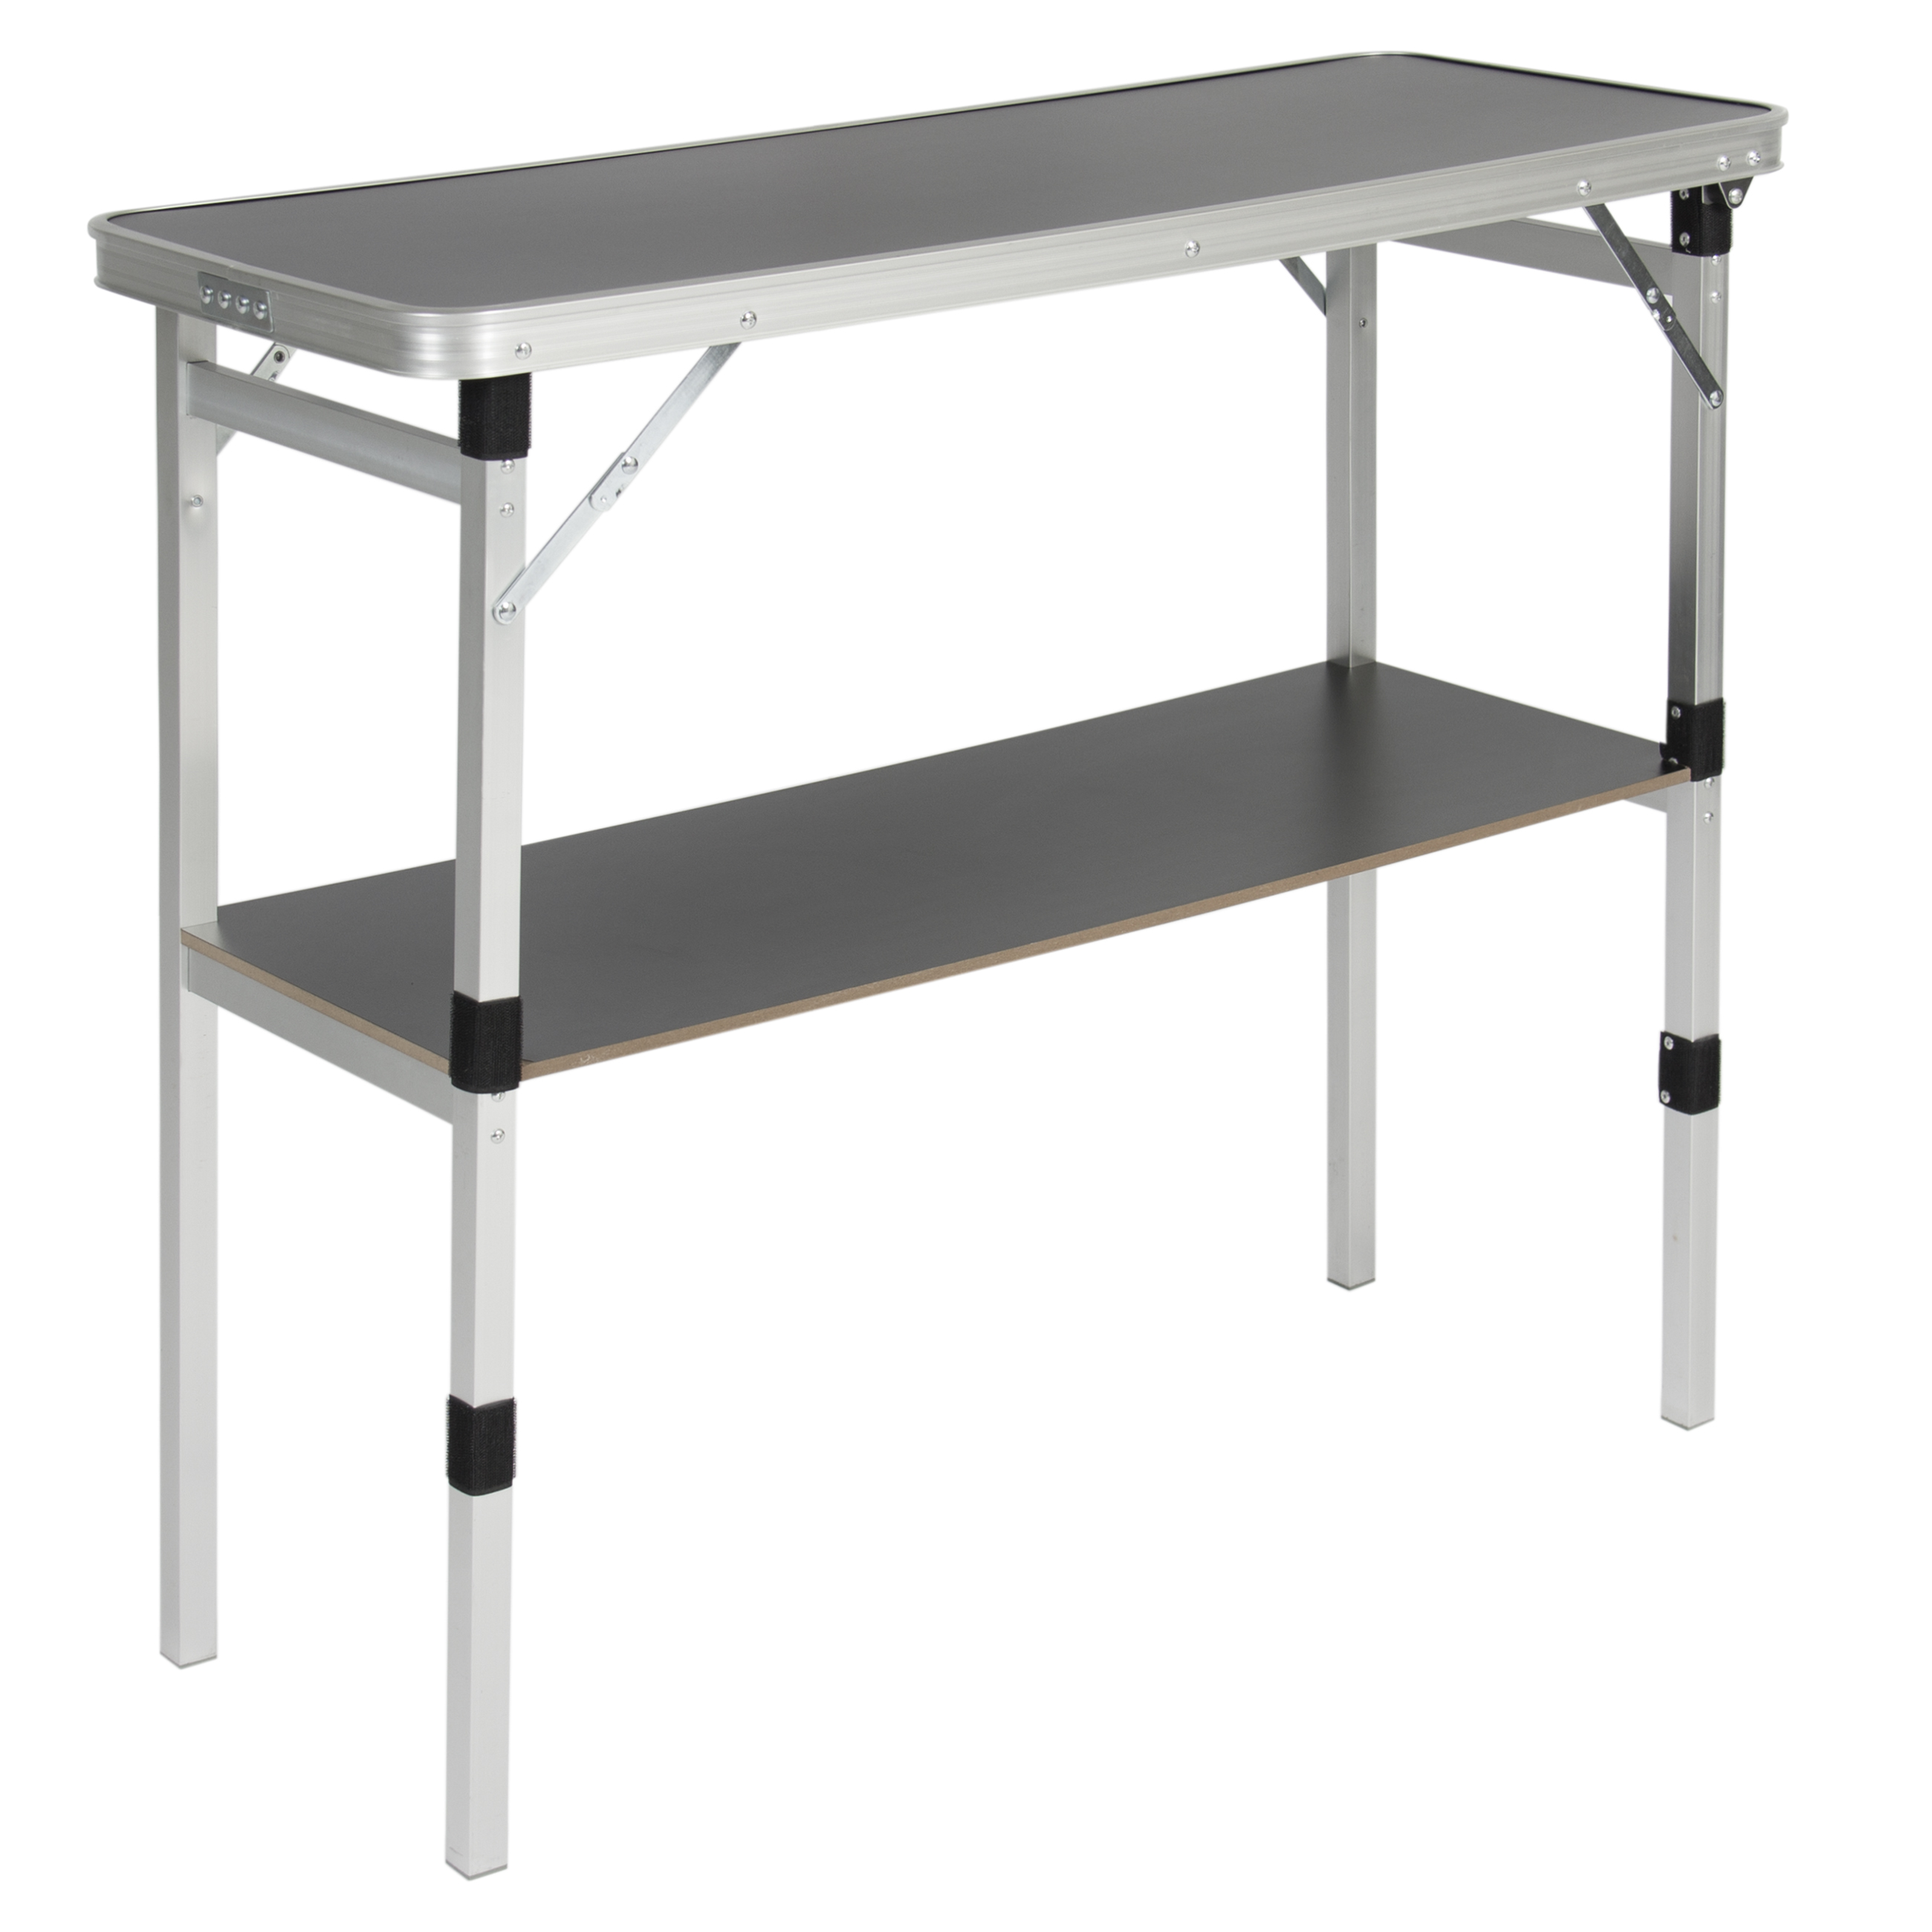 ... Watchthetrailerfo Fold Up Bar Table Modern Coffee Tables And Accent  Tables Best Choice Products Portable High Top ...